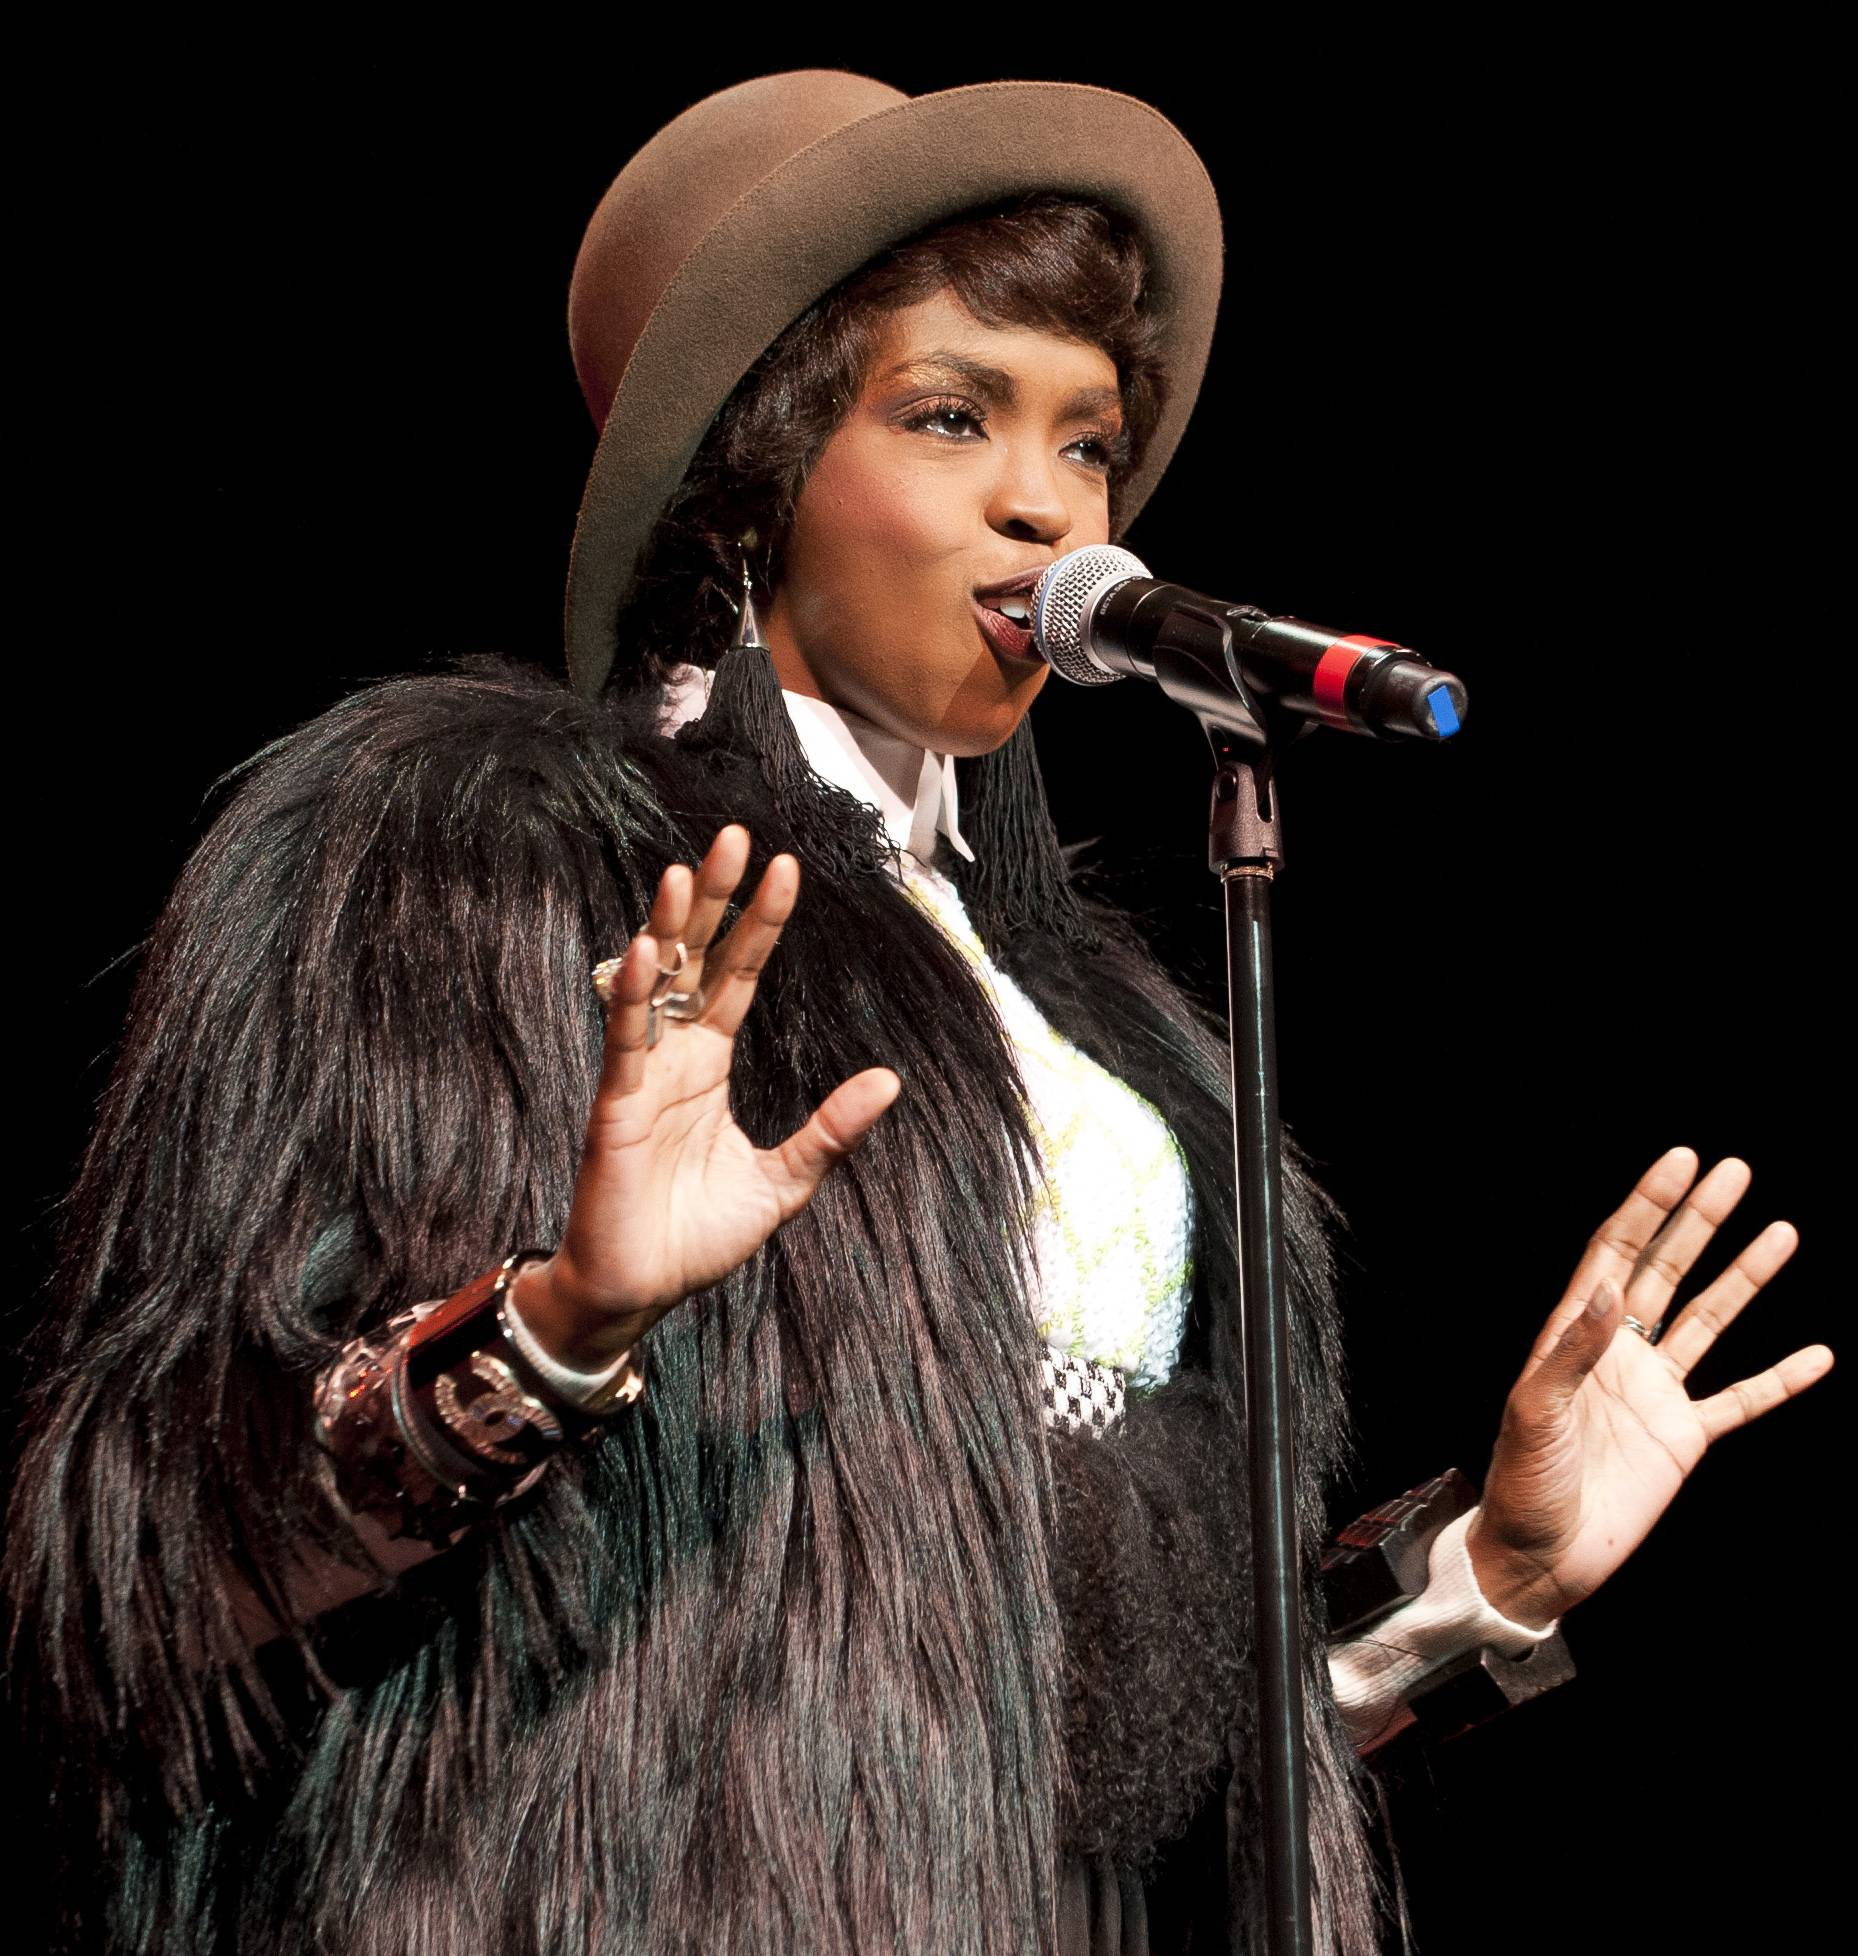 Lauryn Hill in Dreamgirls - For a project that was in development as long as Dreamgirls, it's no surprise many actresses cycled through the lead role of Deena Jones. Lauryn Hill was briefly attached in the mid-1990s, at the peak of her popularity, before her self-imposed exile. Of course,Beyoncé won the part in the end.(Photo: Jason Miller/Getty Images for Rock & Roll Hall Of Fame)